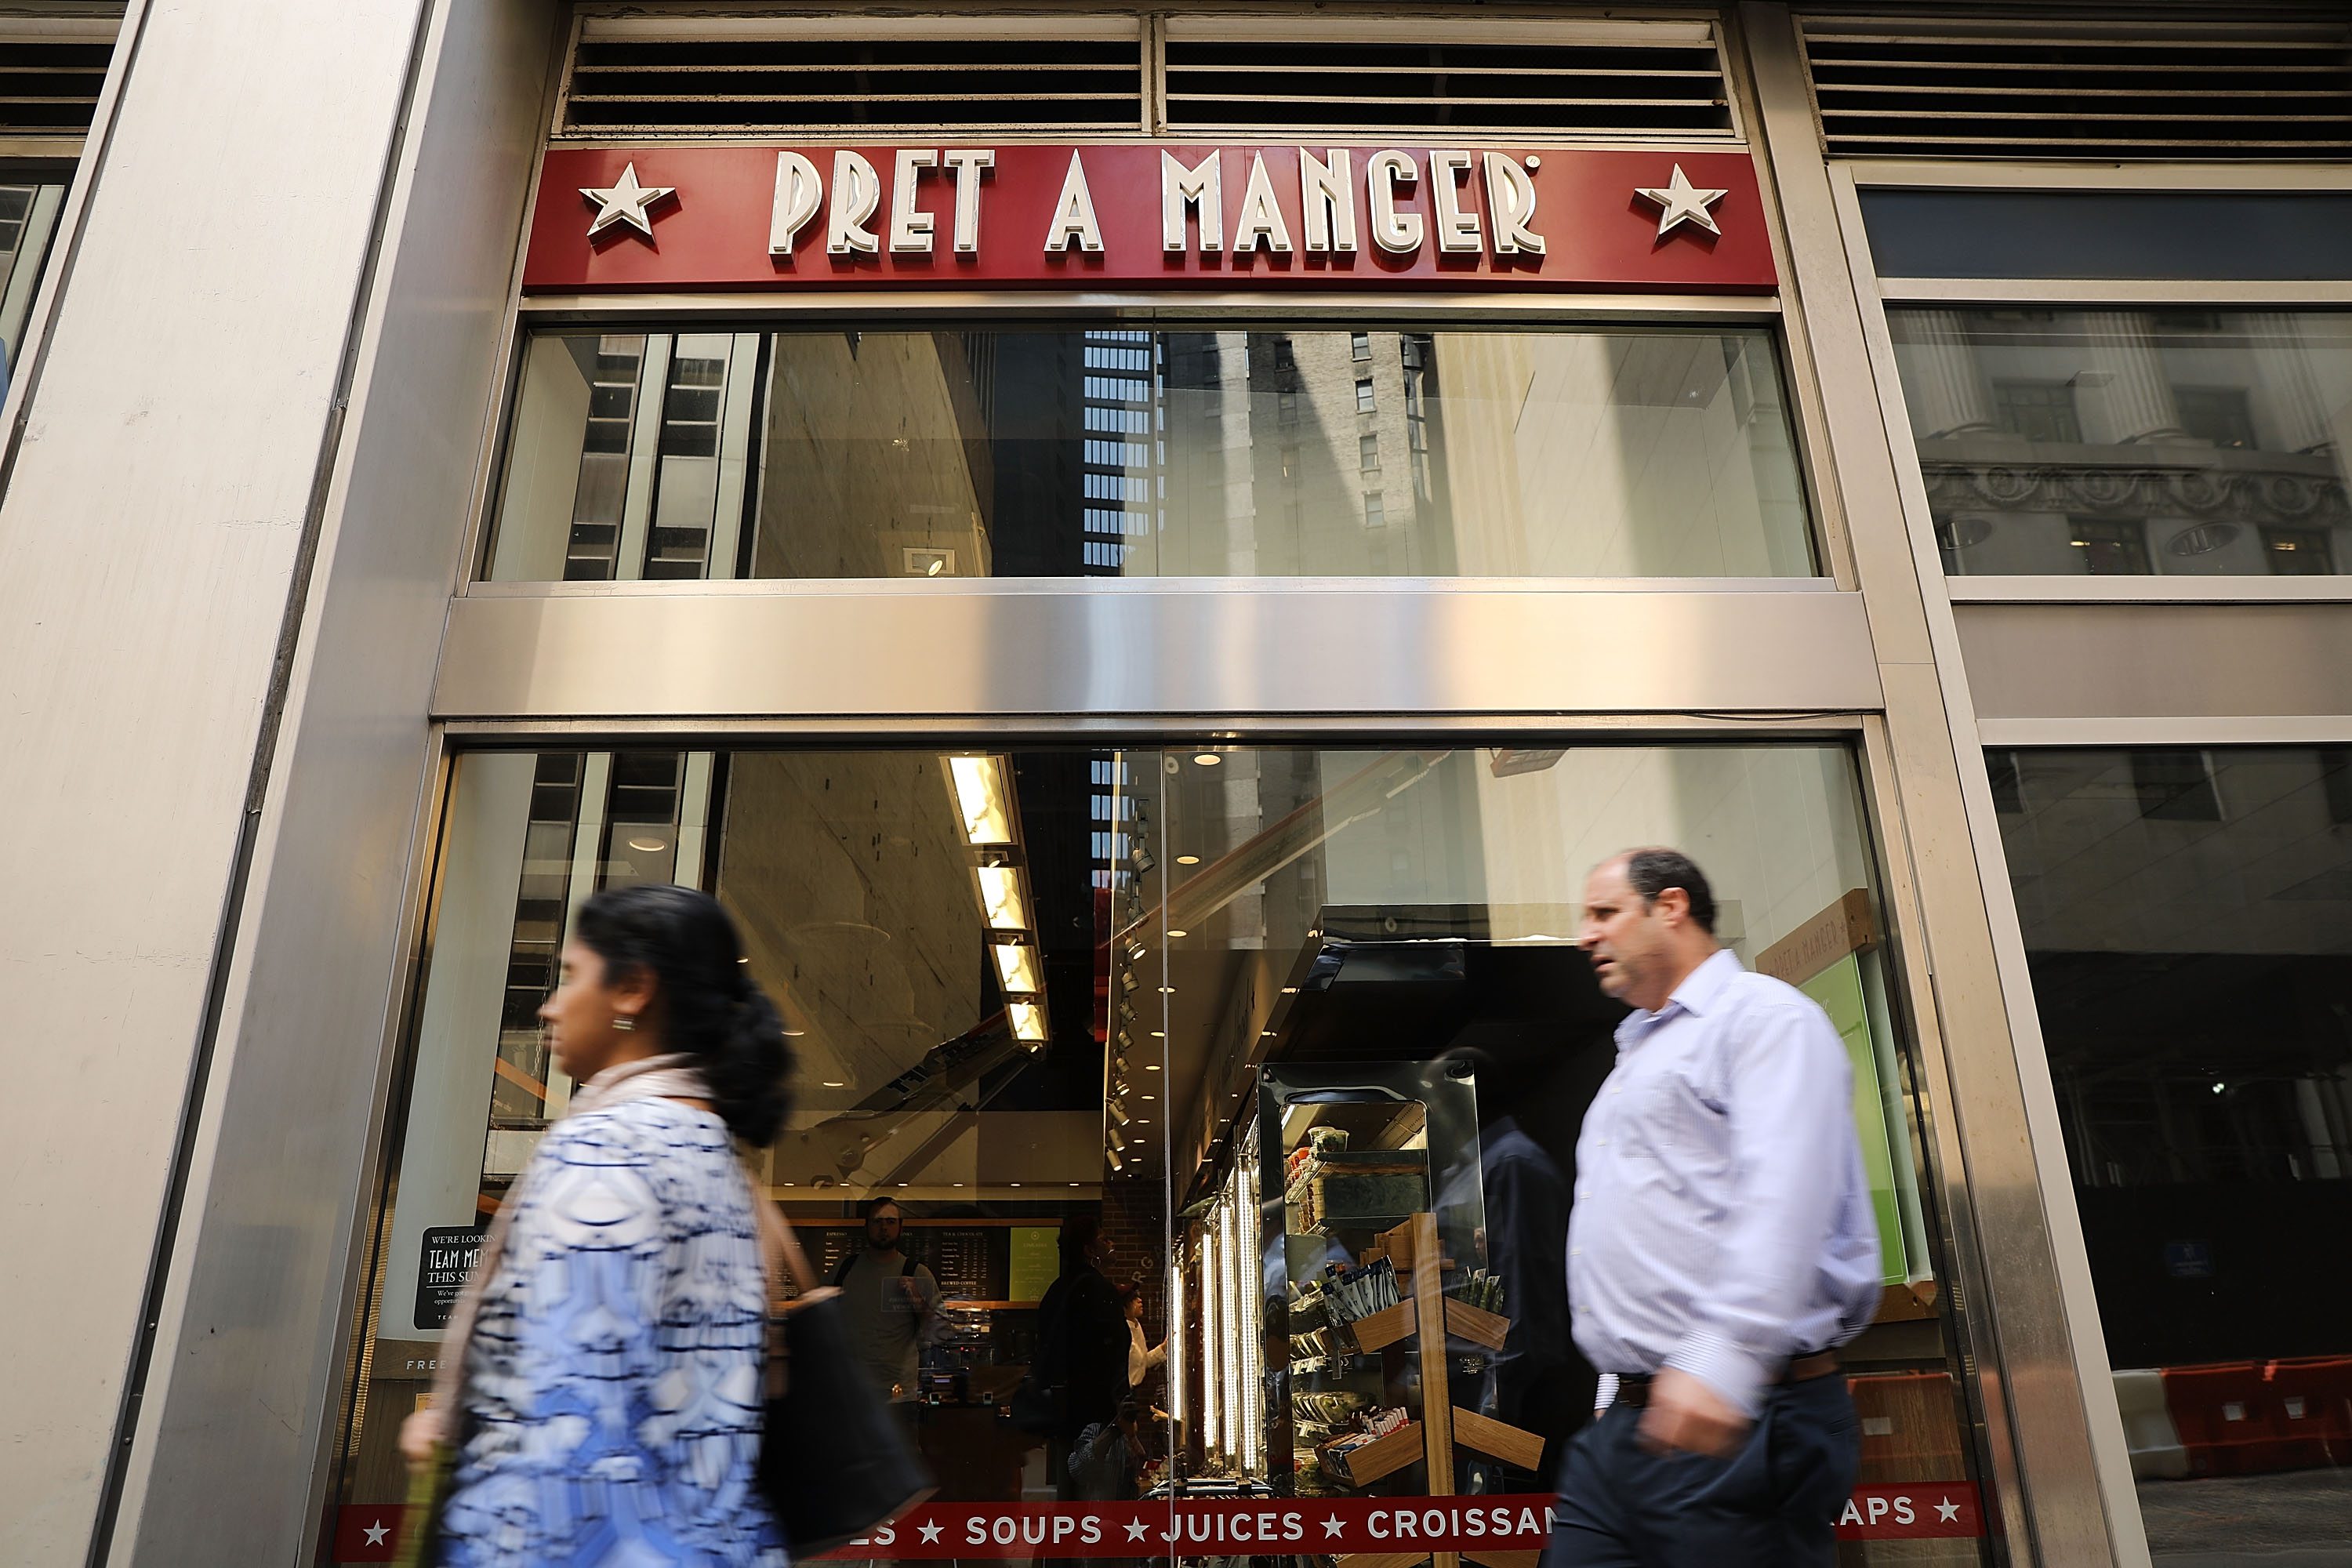 JAB Holding Co To Acquire Pret A Manger Sandwich Chain For $2 Billion